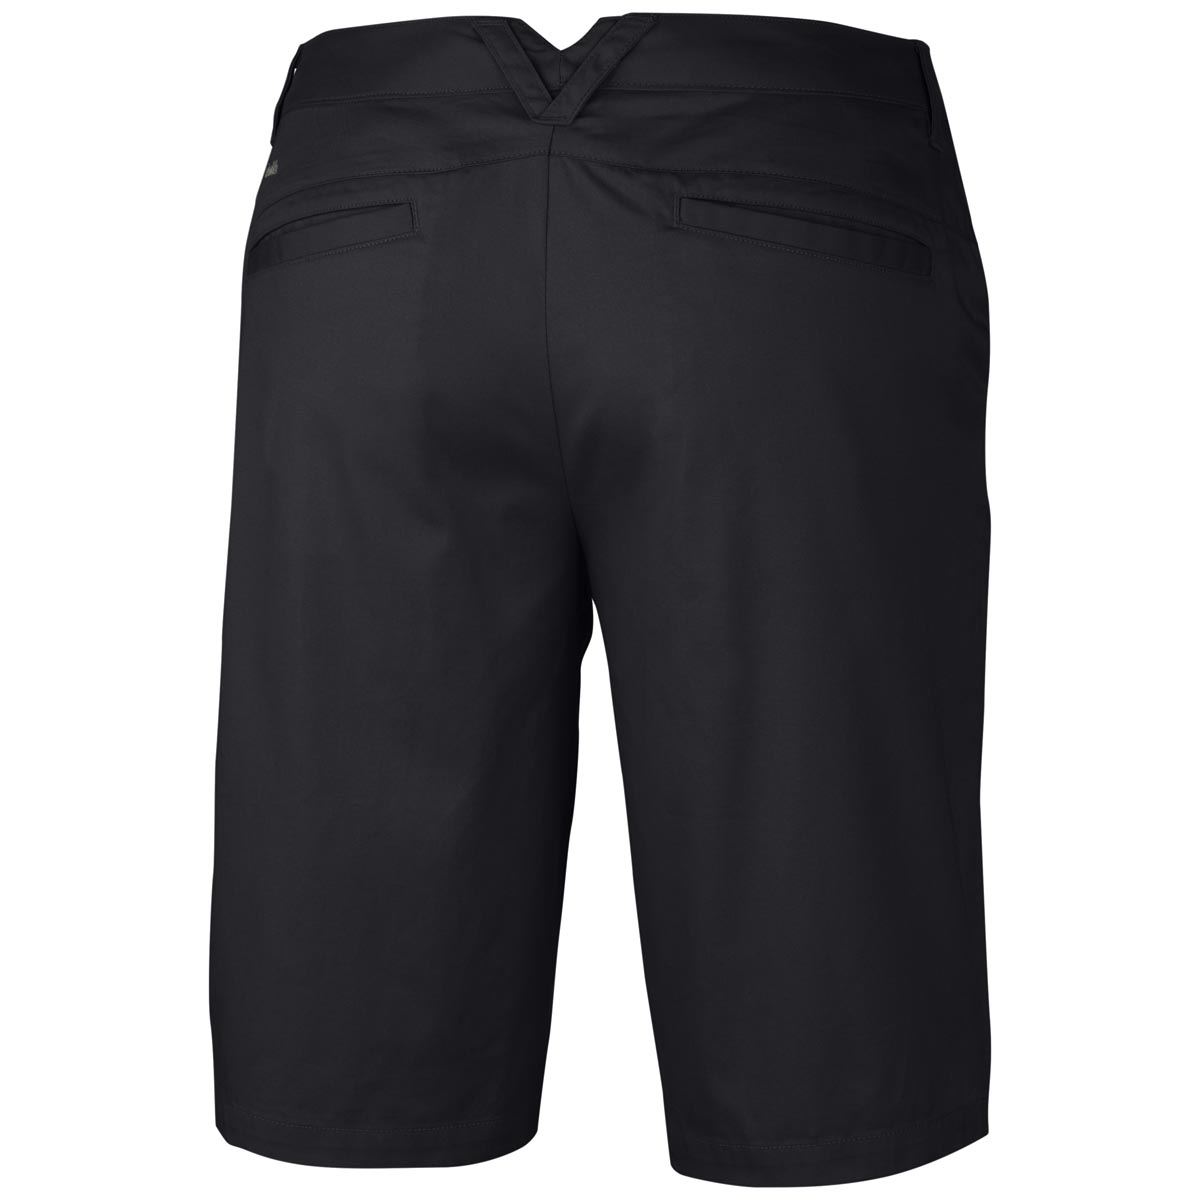 Columbia Women's Kenzie Cove Bermuda Short Extended Sizes